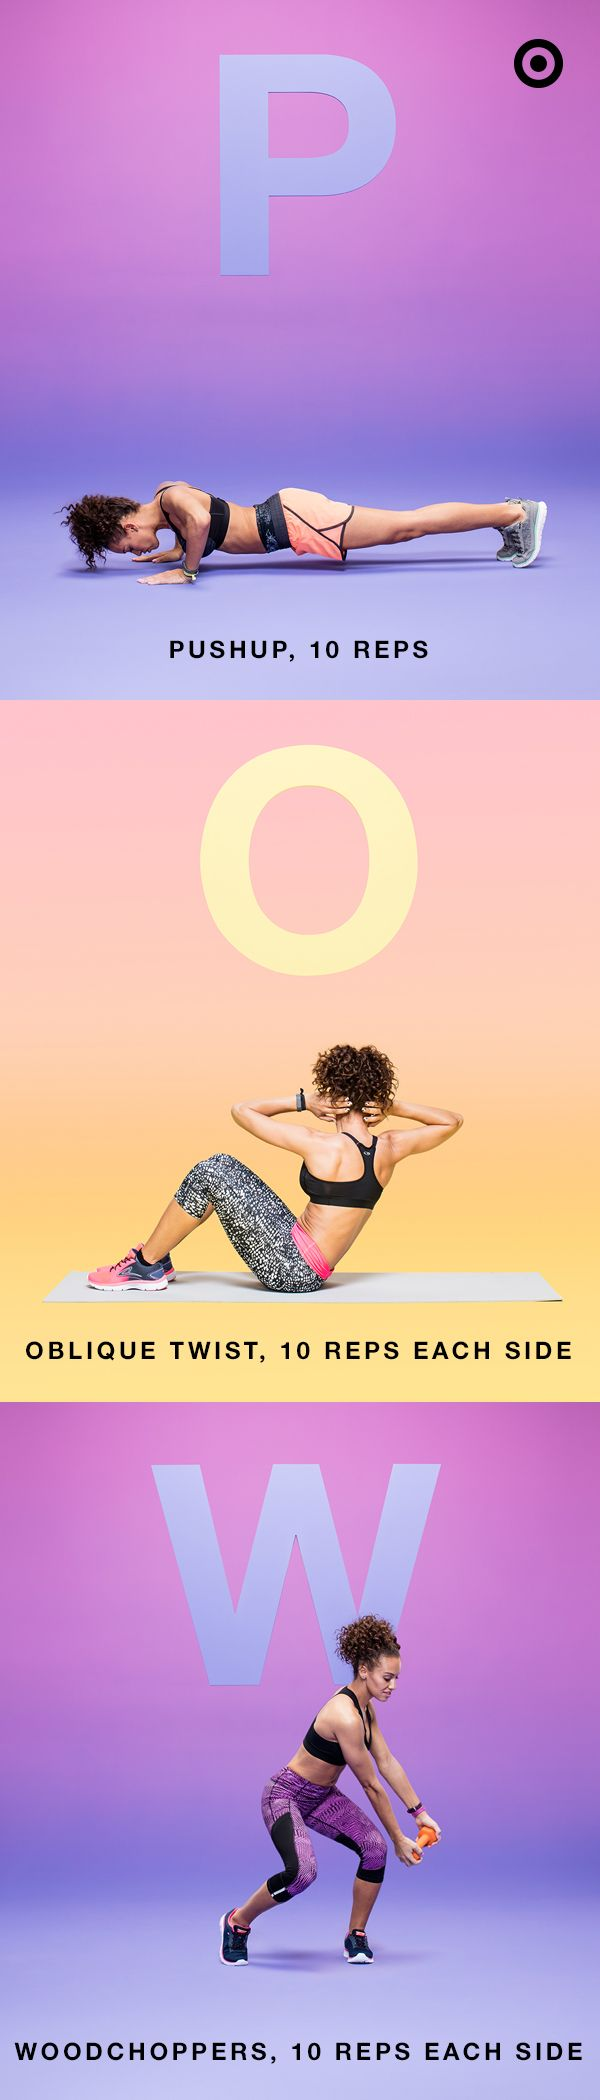 POW! It's chest and oblique day, ladies. Today, get your Pushup, Oblique Twist, and Woodchopper on in one of the all-new C9 Champion® Power Core® or Power Shape™ sports bras. Wanna give your legs some love too? Pair POW with some Froggy Jumps and Tuck Jumps. It might be hard, but not as hard as choosing which sports bra to buy.